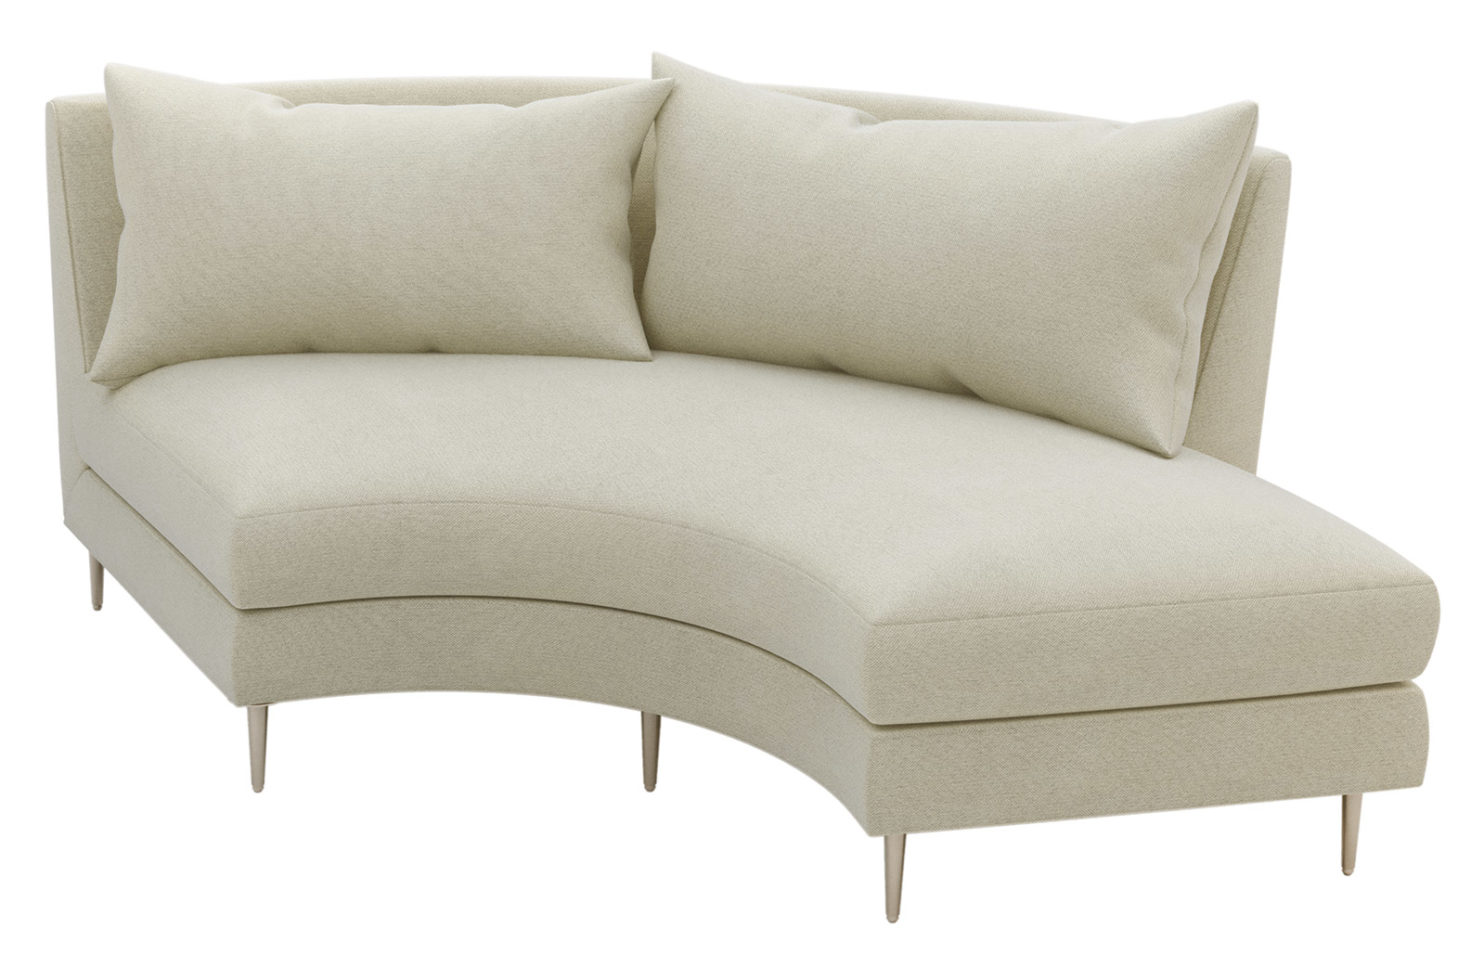 fizz mimosa armless sofa w bumper 105FT003P2 AS RSB